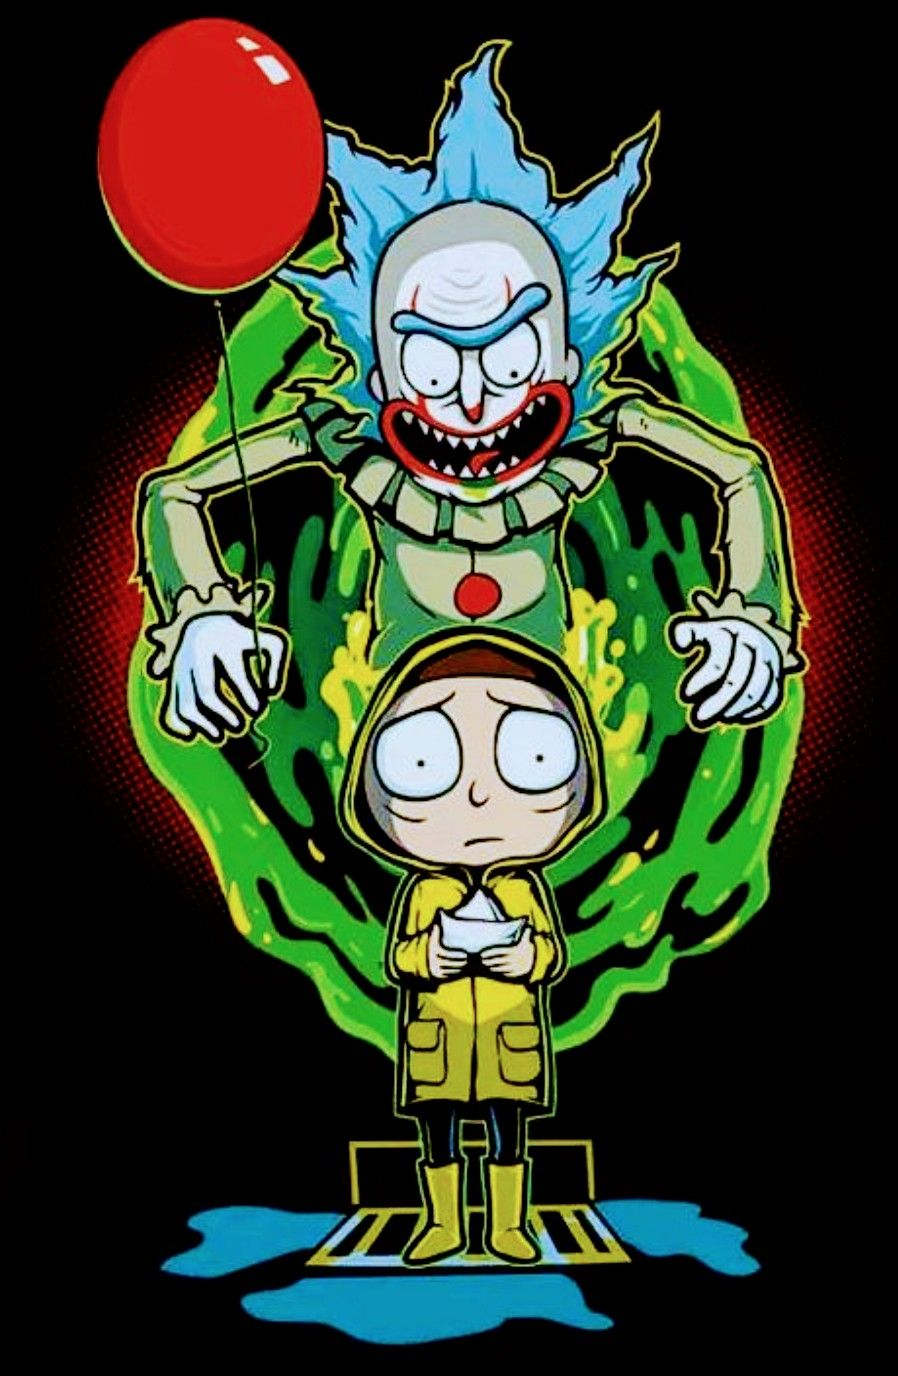 Rick and Morty x Pennywise RICK AND MORTY Rick morty 898x1376